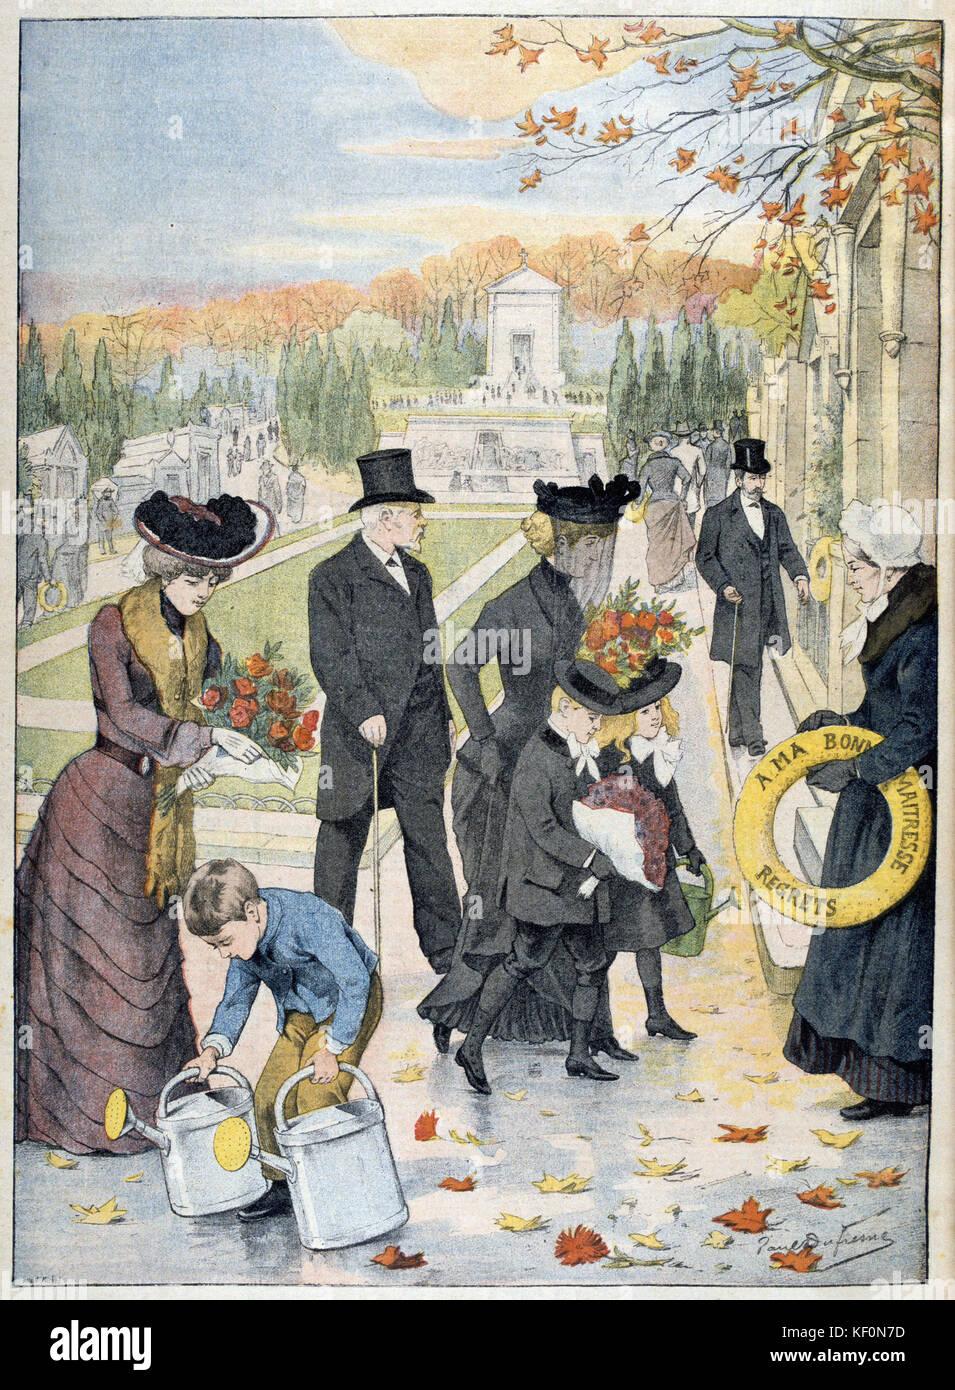 All Saints Day: Familiy visiting cemetery with flowers 'Le Petit Journal'  Paris, 9 November 1902. - Stock Image